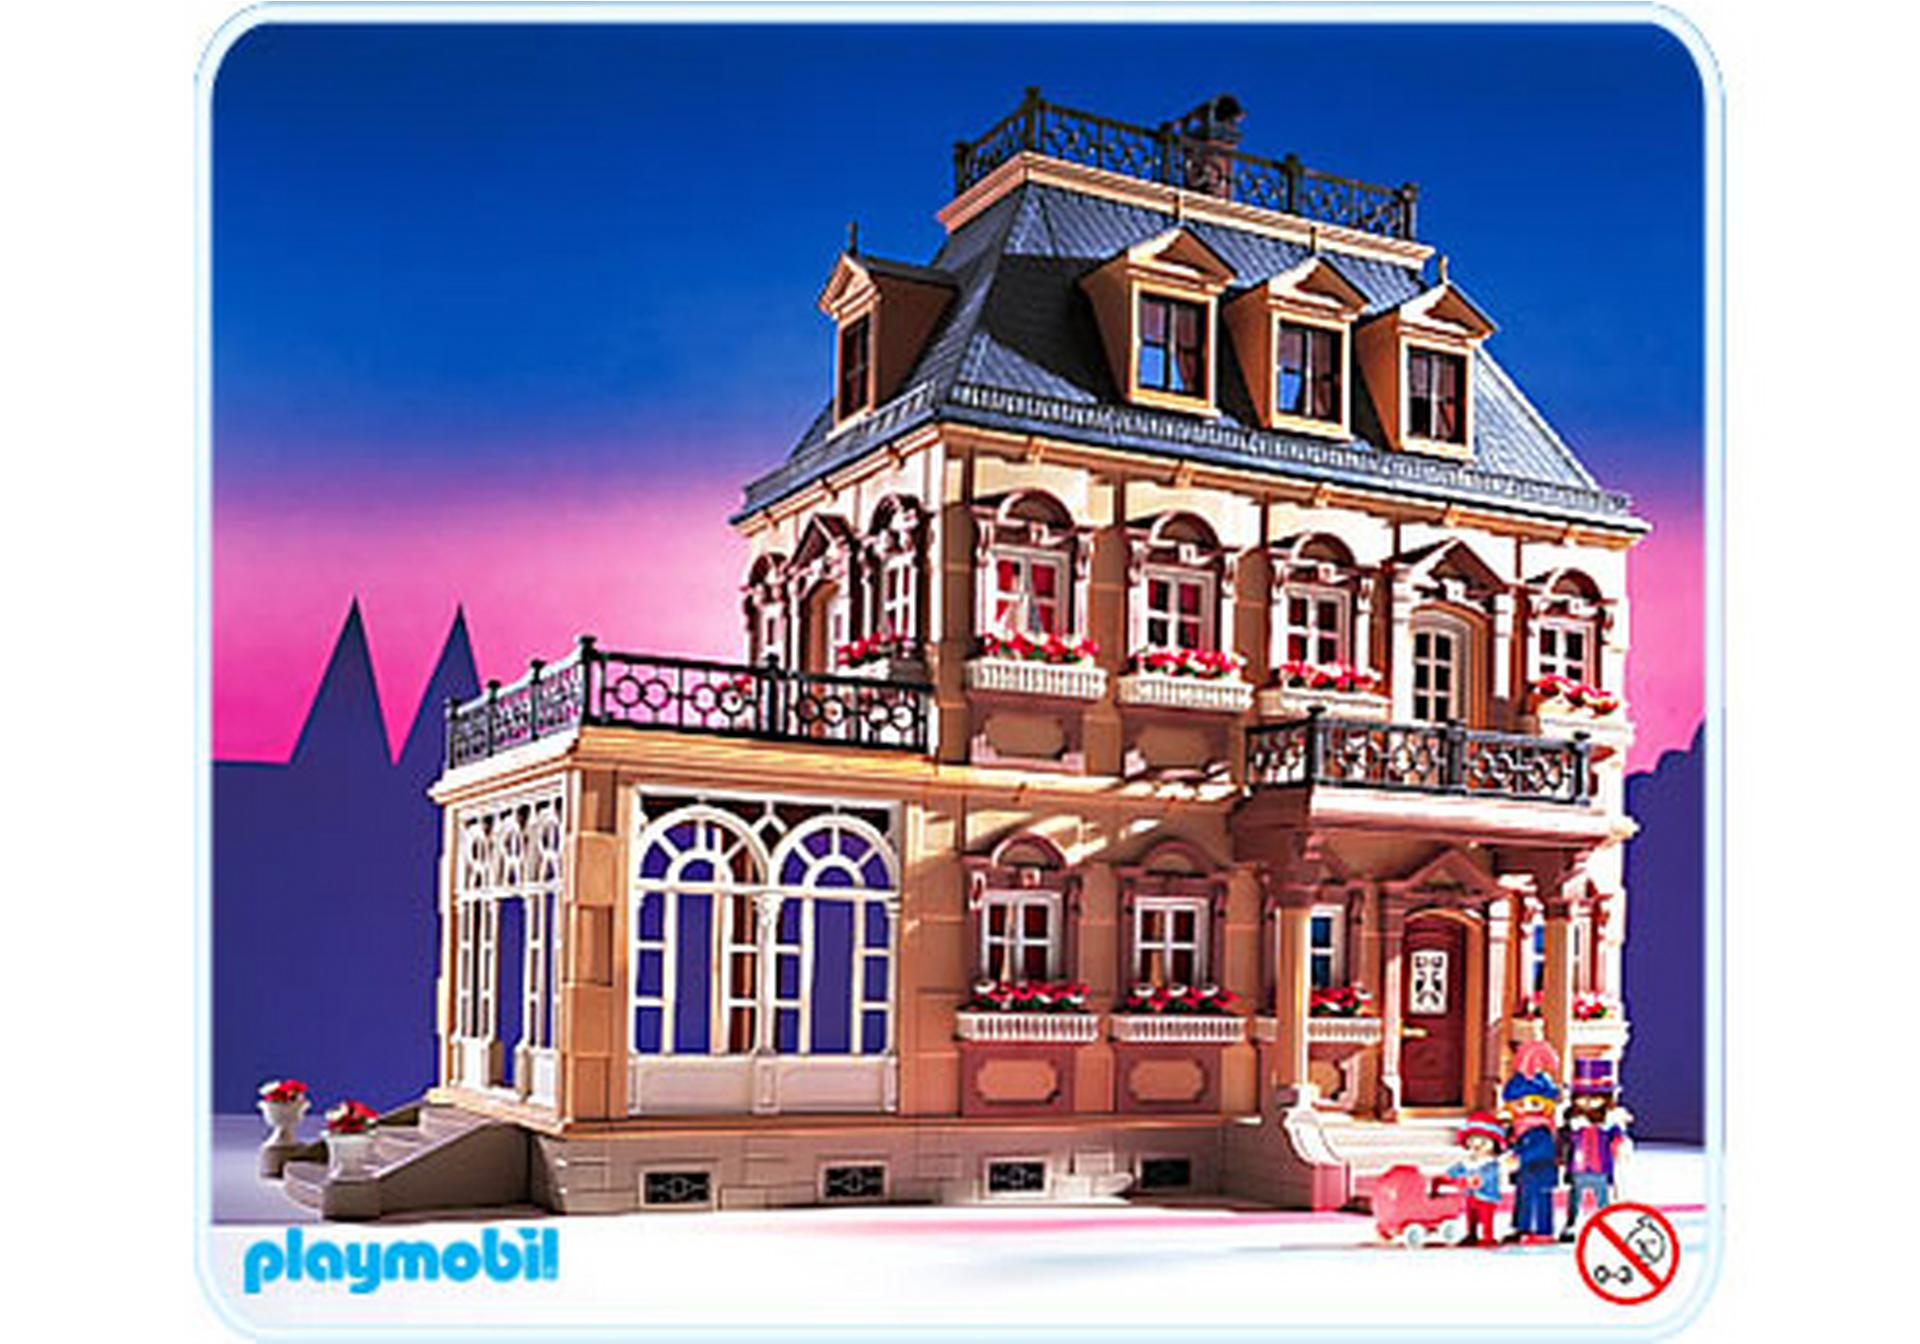 Best maison moderne playmobil ideas awesome interior home satellite for Maison moderne playmobil